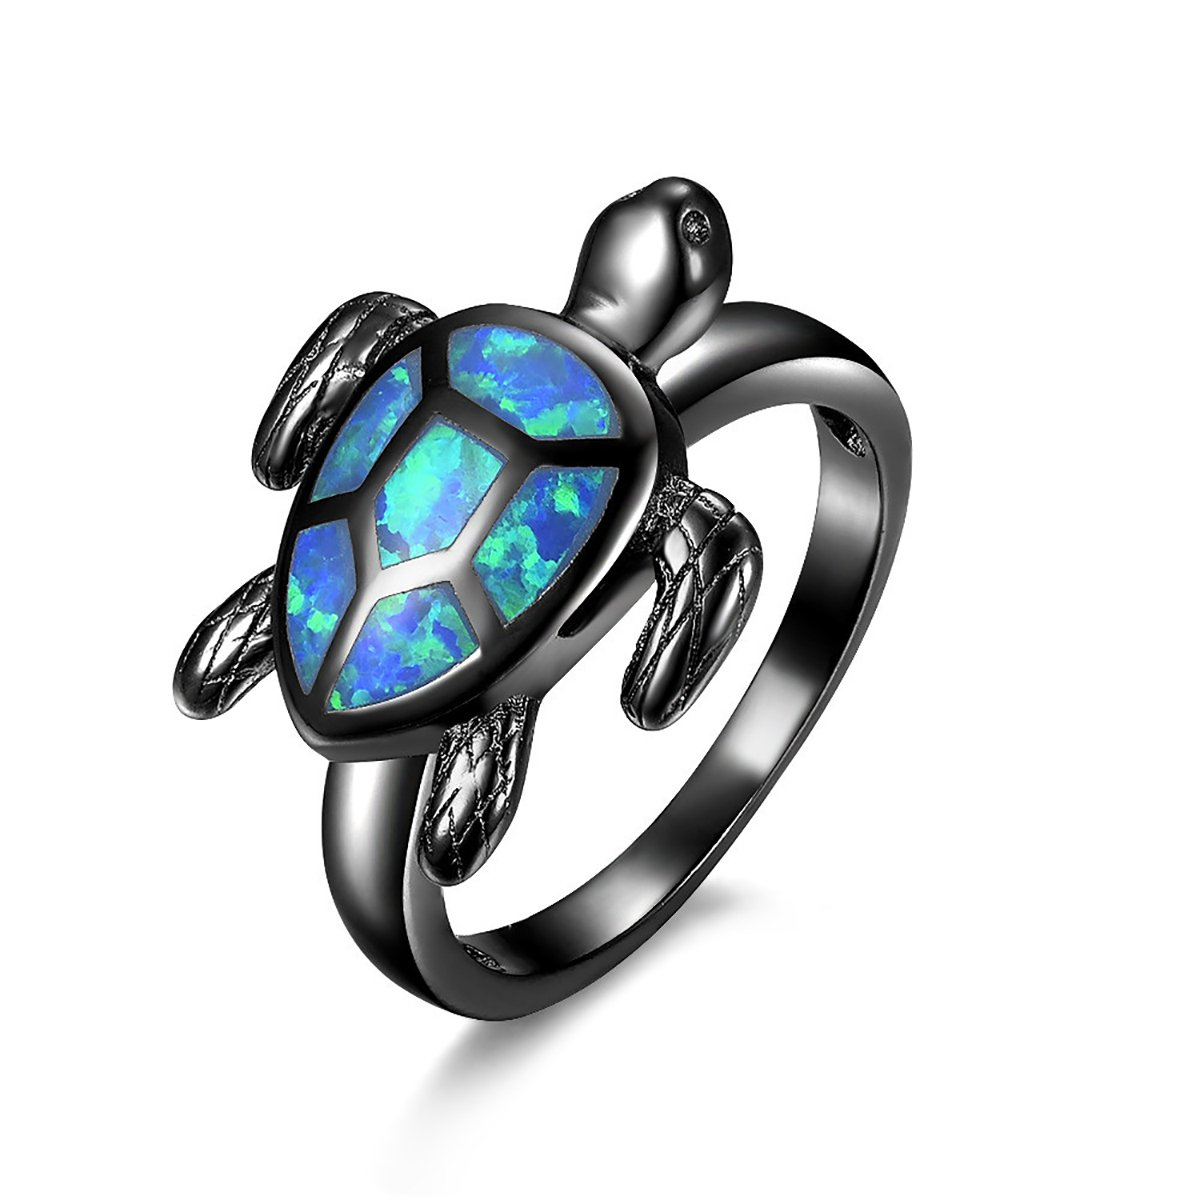 Trendy Statement Black Gold Filled Opal Lovely Tortoise Ring for Women Size 5-11 (9)